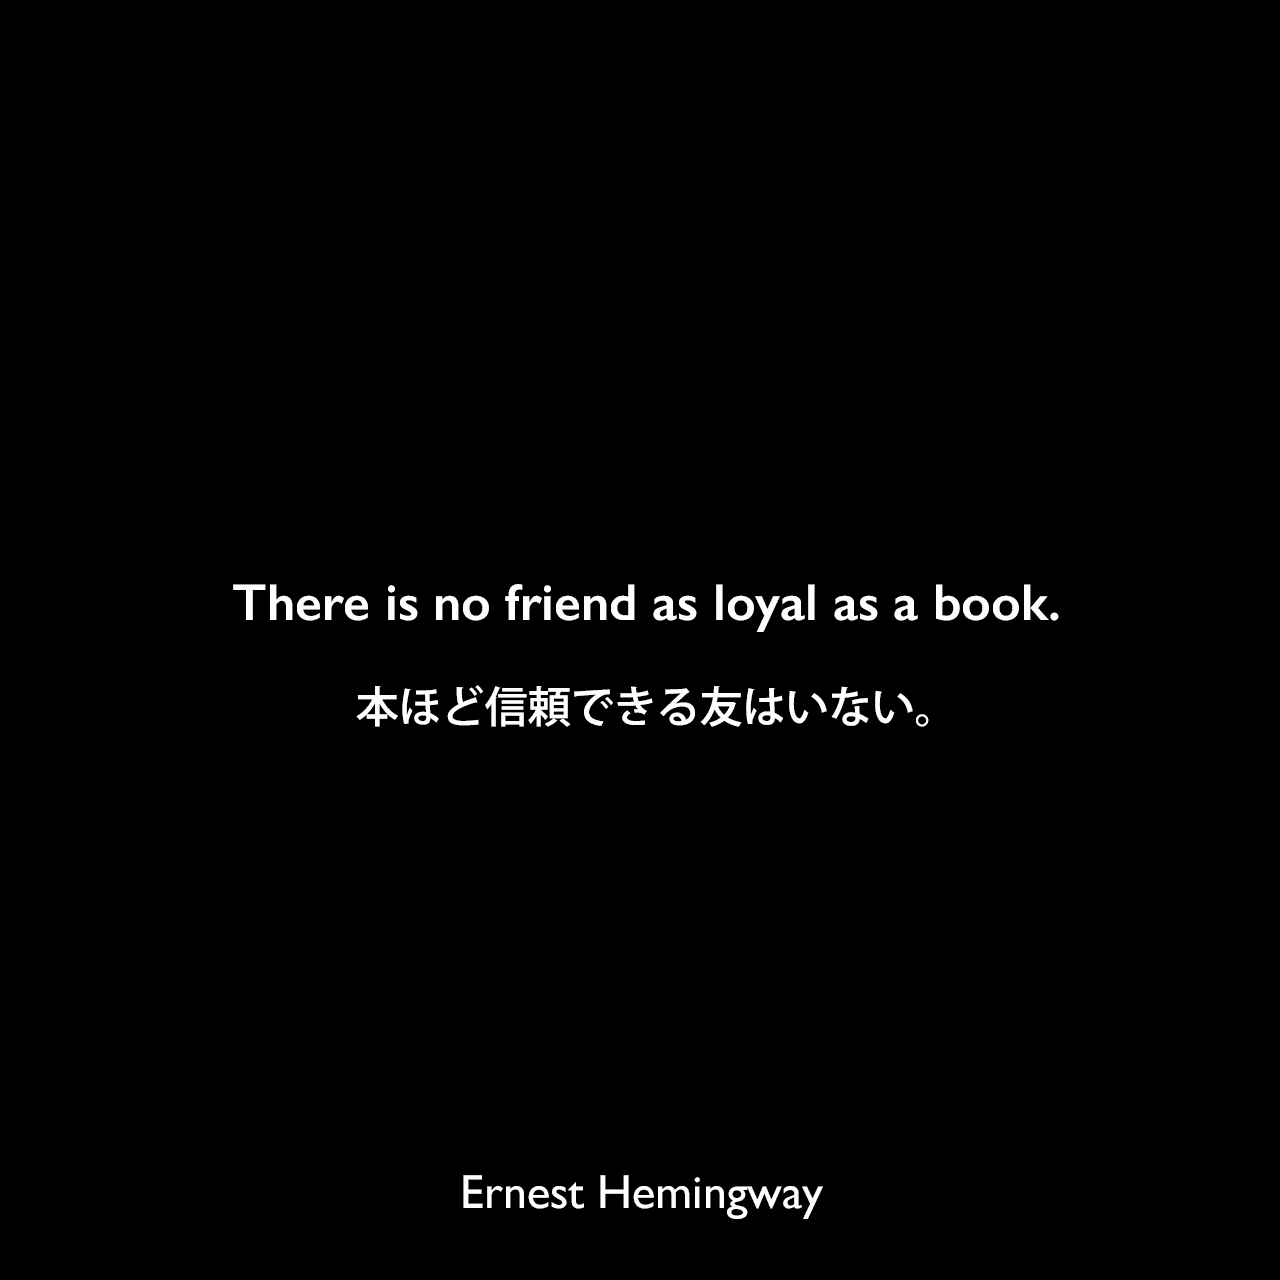 There is no friend as loyal as a book.本ほど信頼できる友はいない。Ernest Hemingway